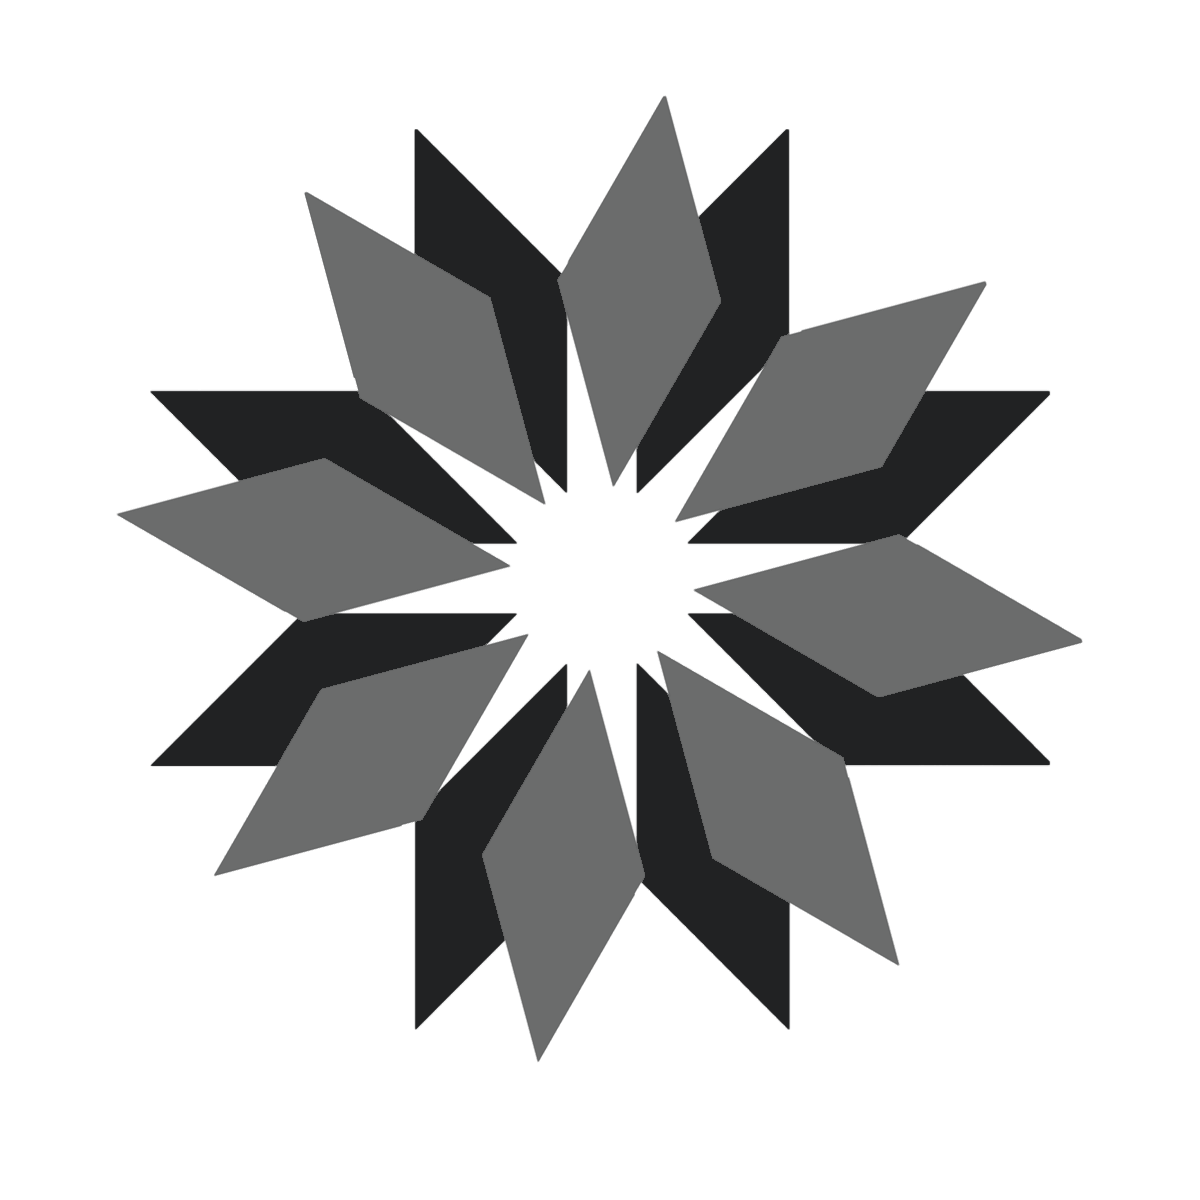 Free Download 3d Black Star Icon Png Transparent Background Image High Quality Star Icon Png This Is Vector Black 3d Star Png I Png Icons Background Images Art